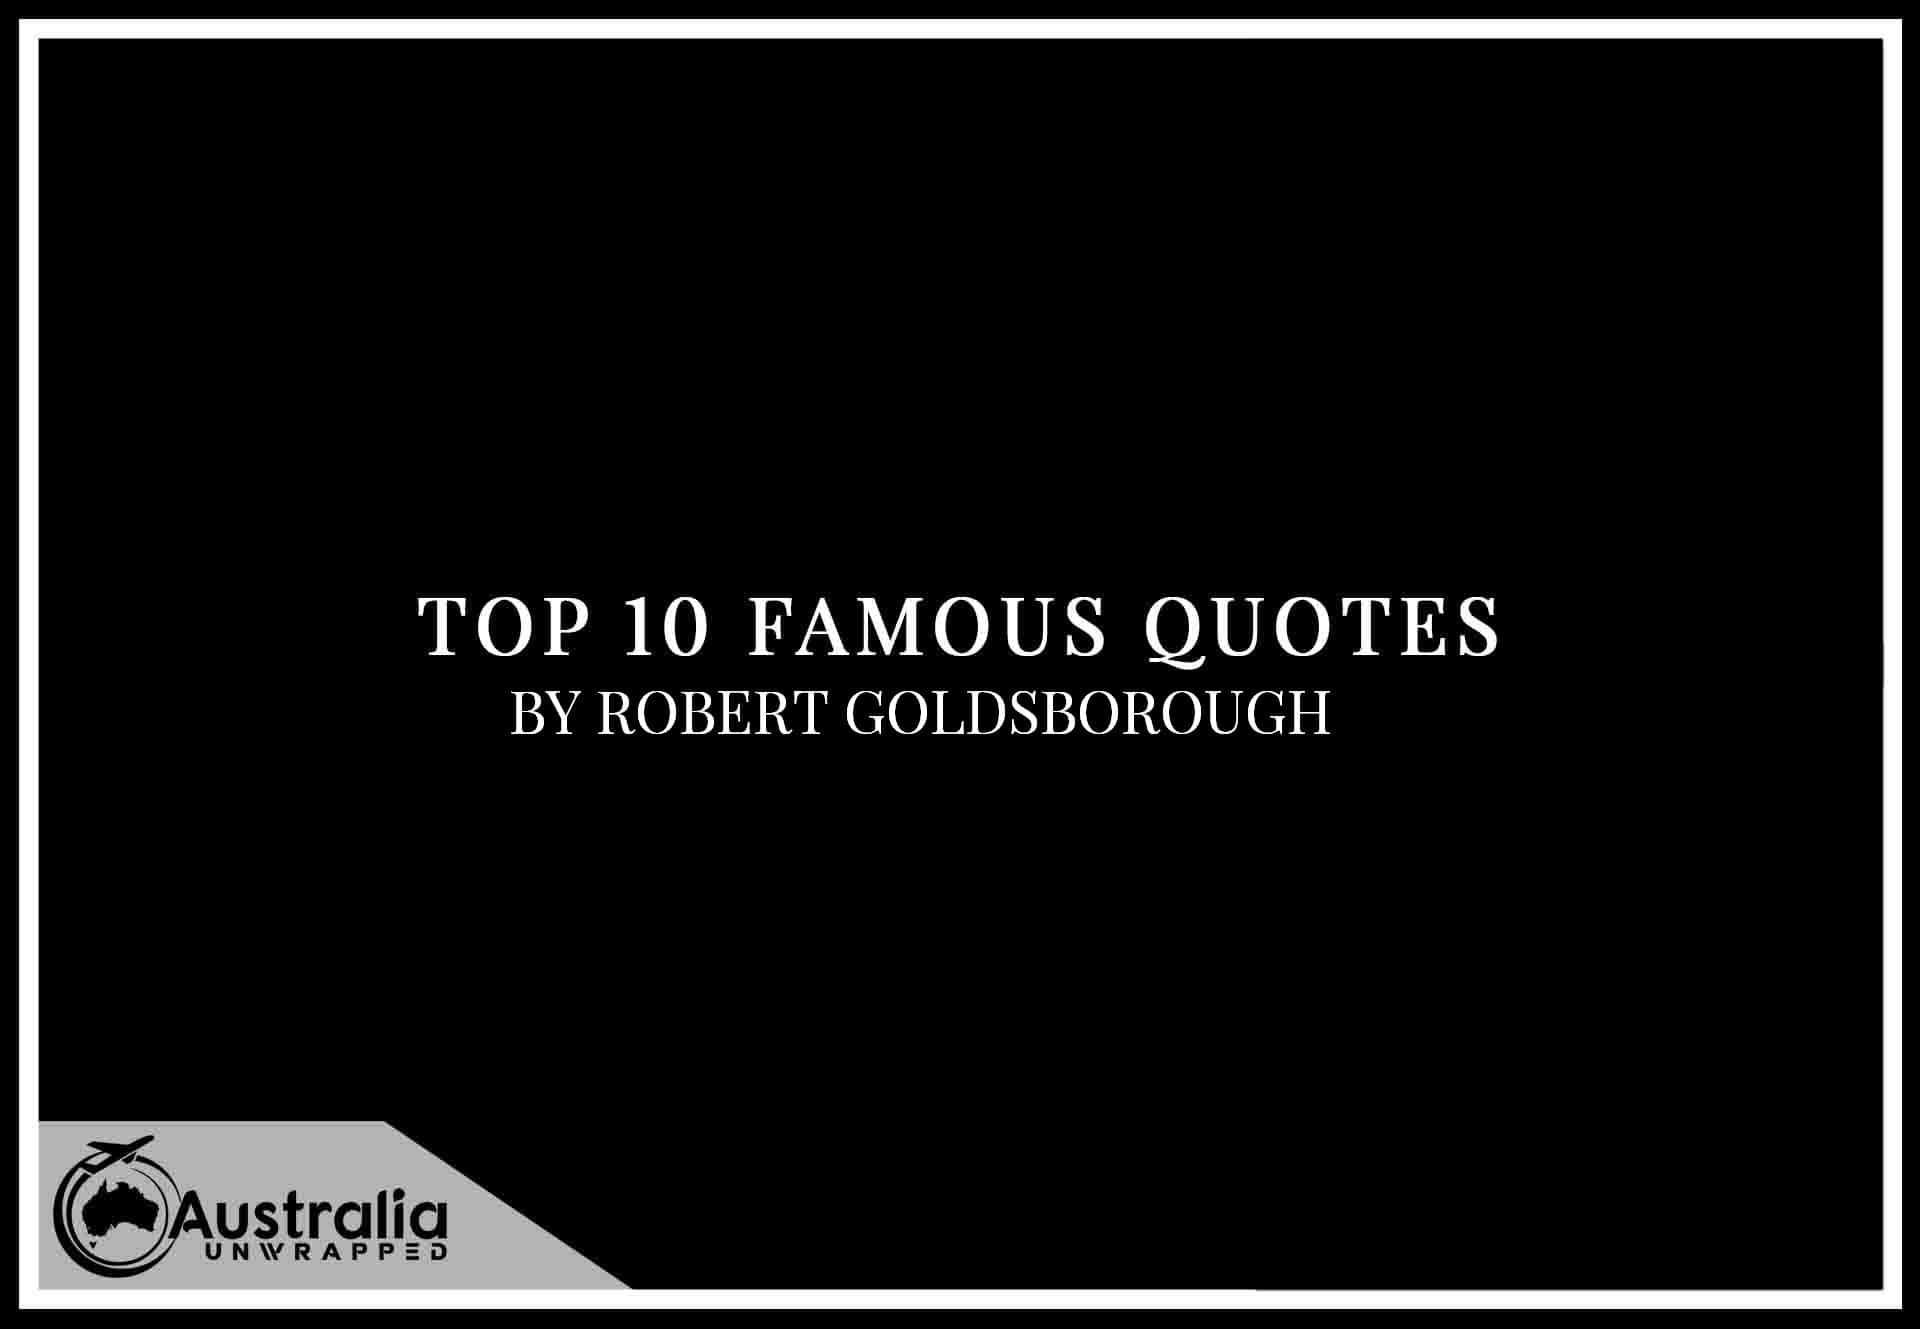 Robert Goldsborough's Top 10 Popular and Famous Quotes